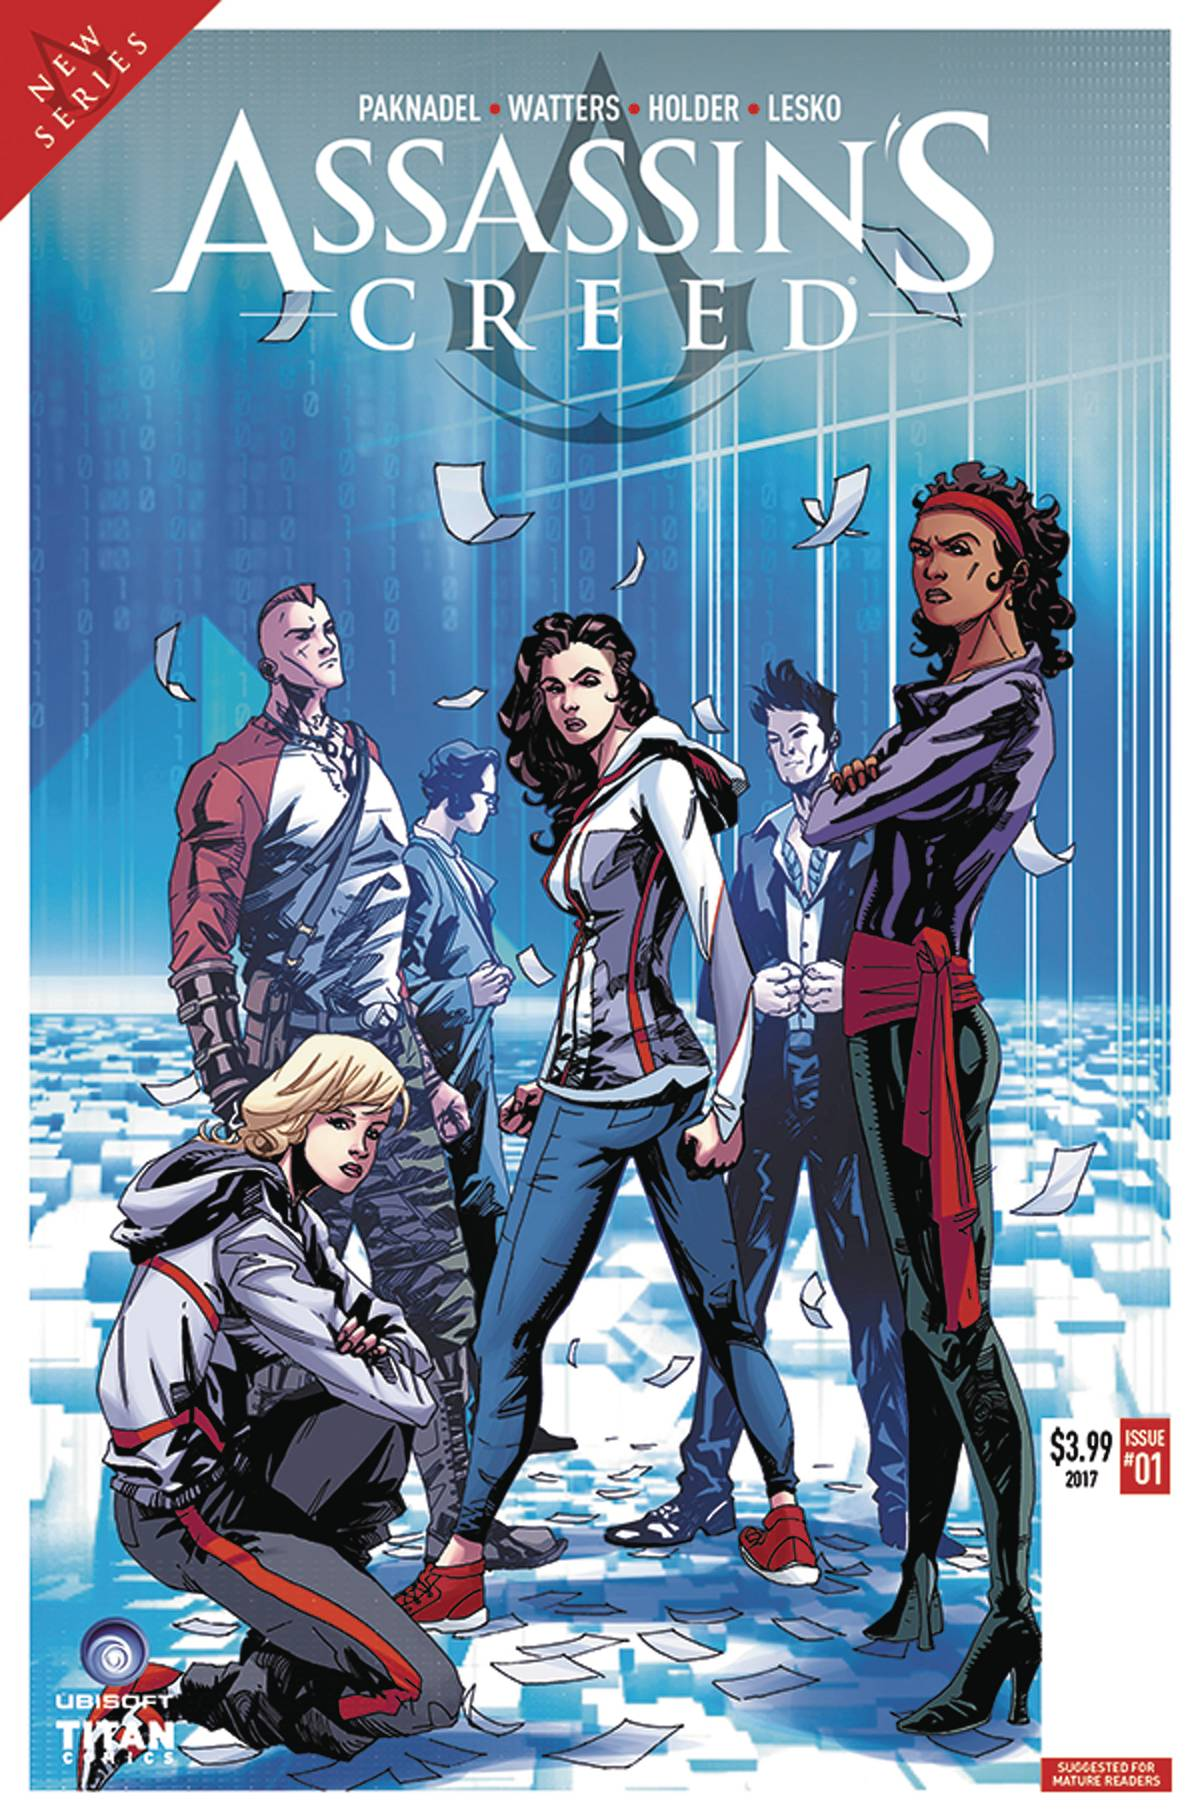 ASSASSINS CREED UPRISING #1 CVR D HOLDER